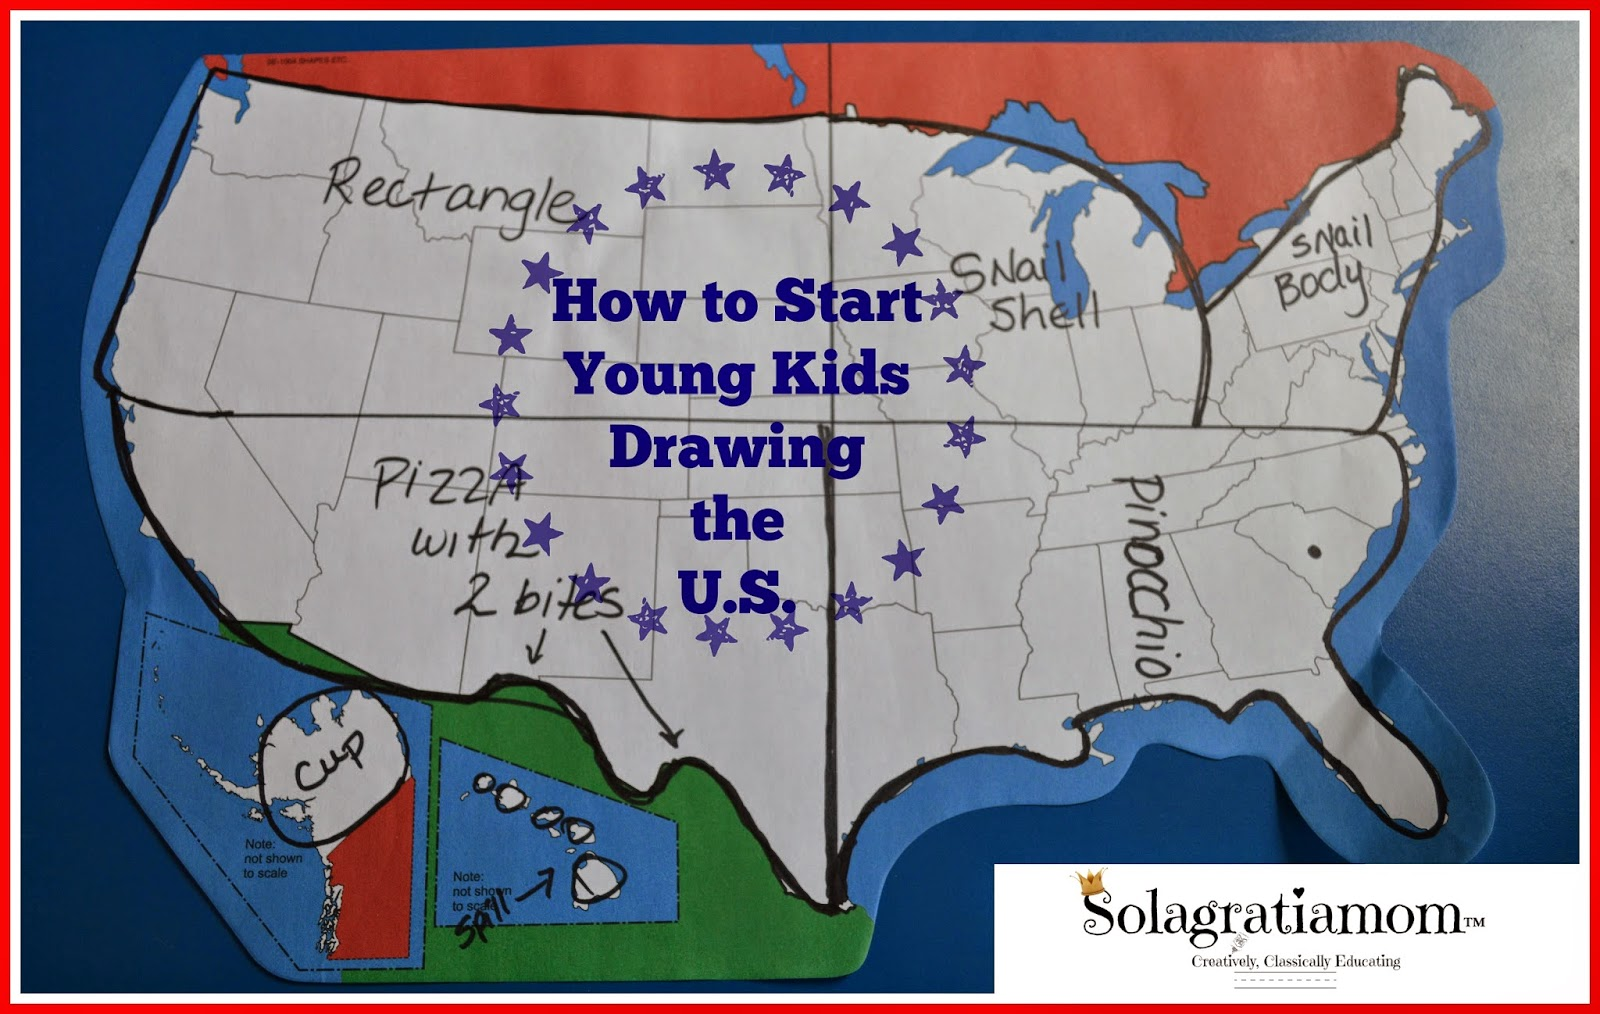 1600x1014 Solagratiamom How To Start Young Kids Drawing The U.s.